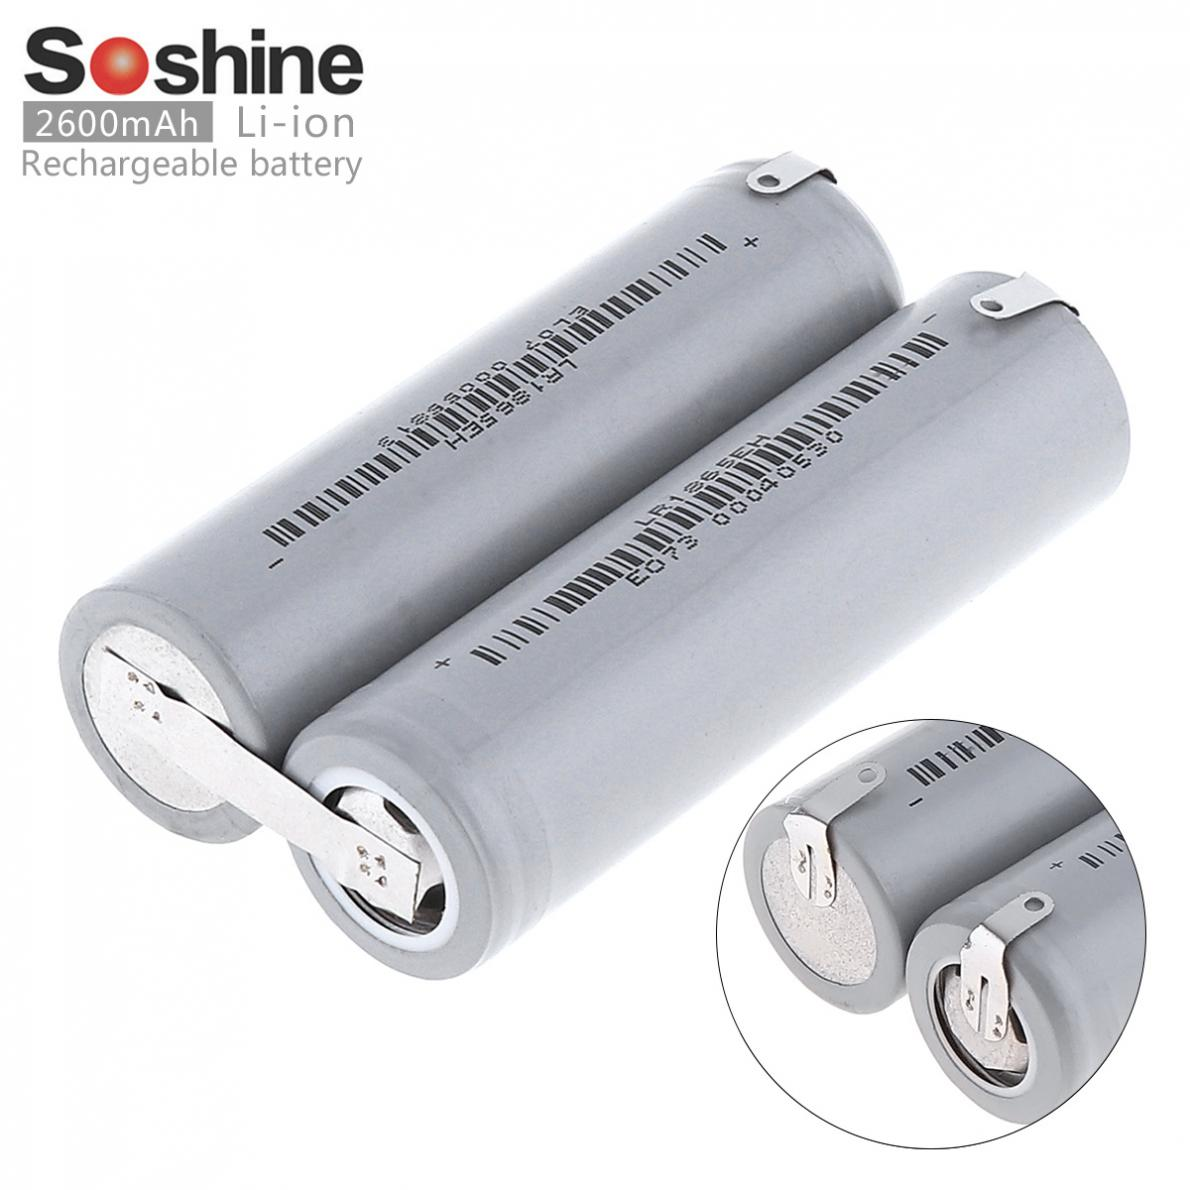 2pcs Soshine 2600mAh 18650 Li-ion Rechargeable Battery with Nickel Sheet Series Connection for Screwdriver Drill Electric Tool стоимость